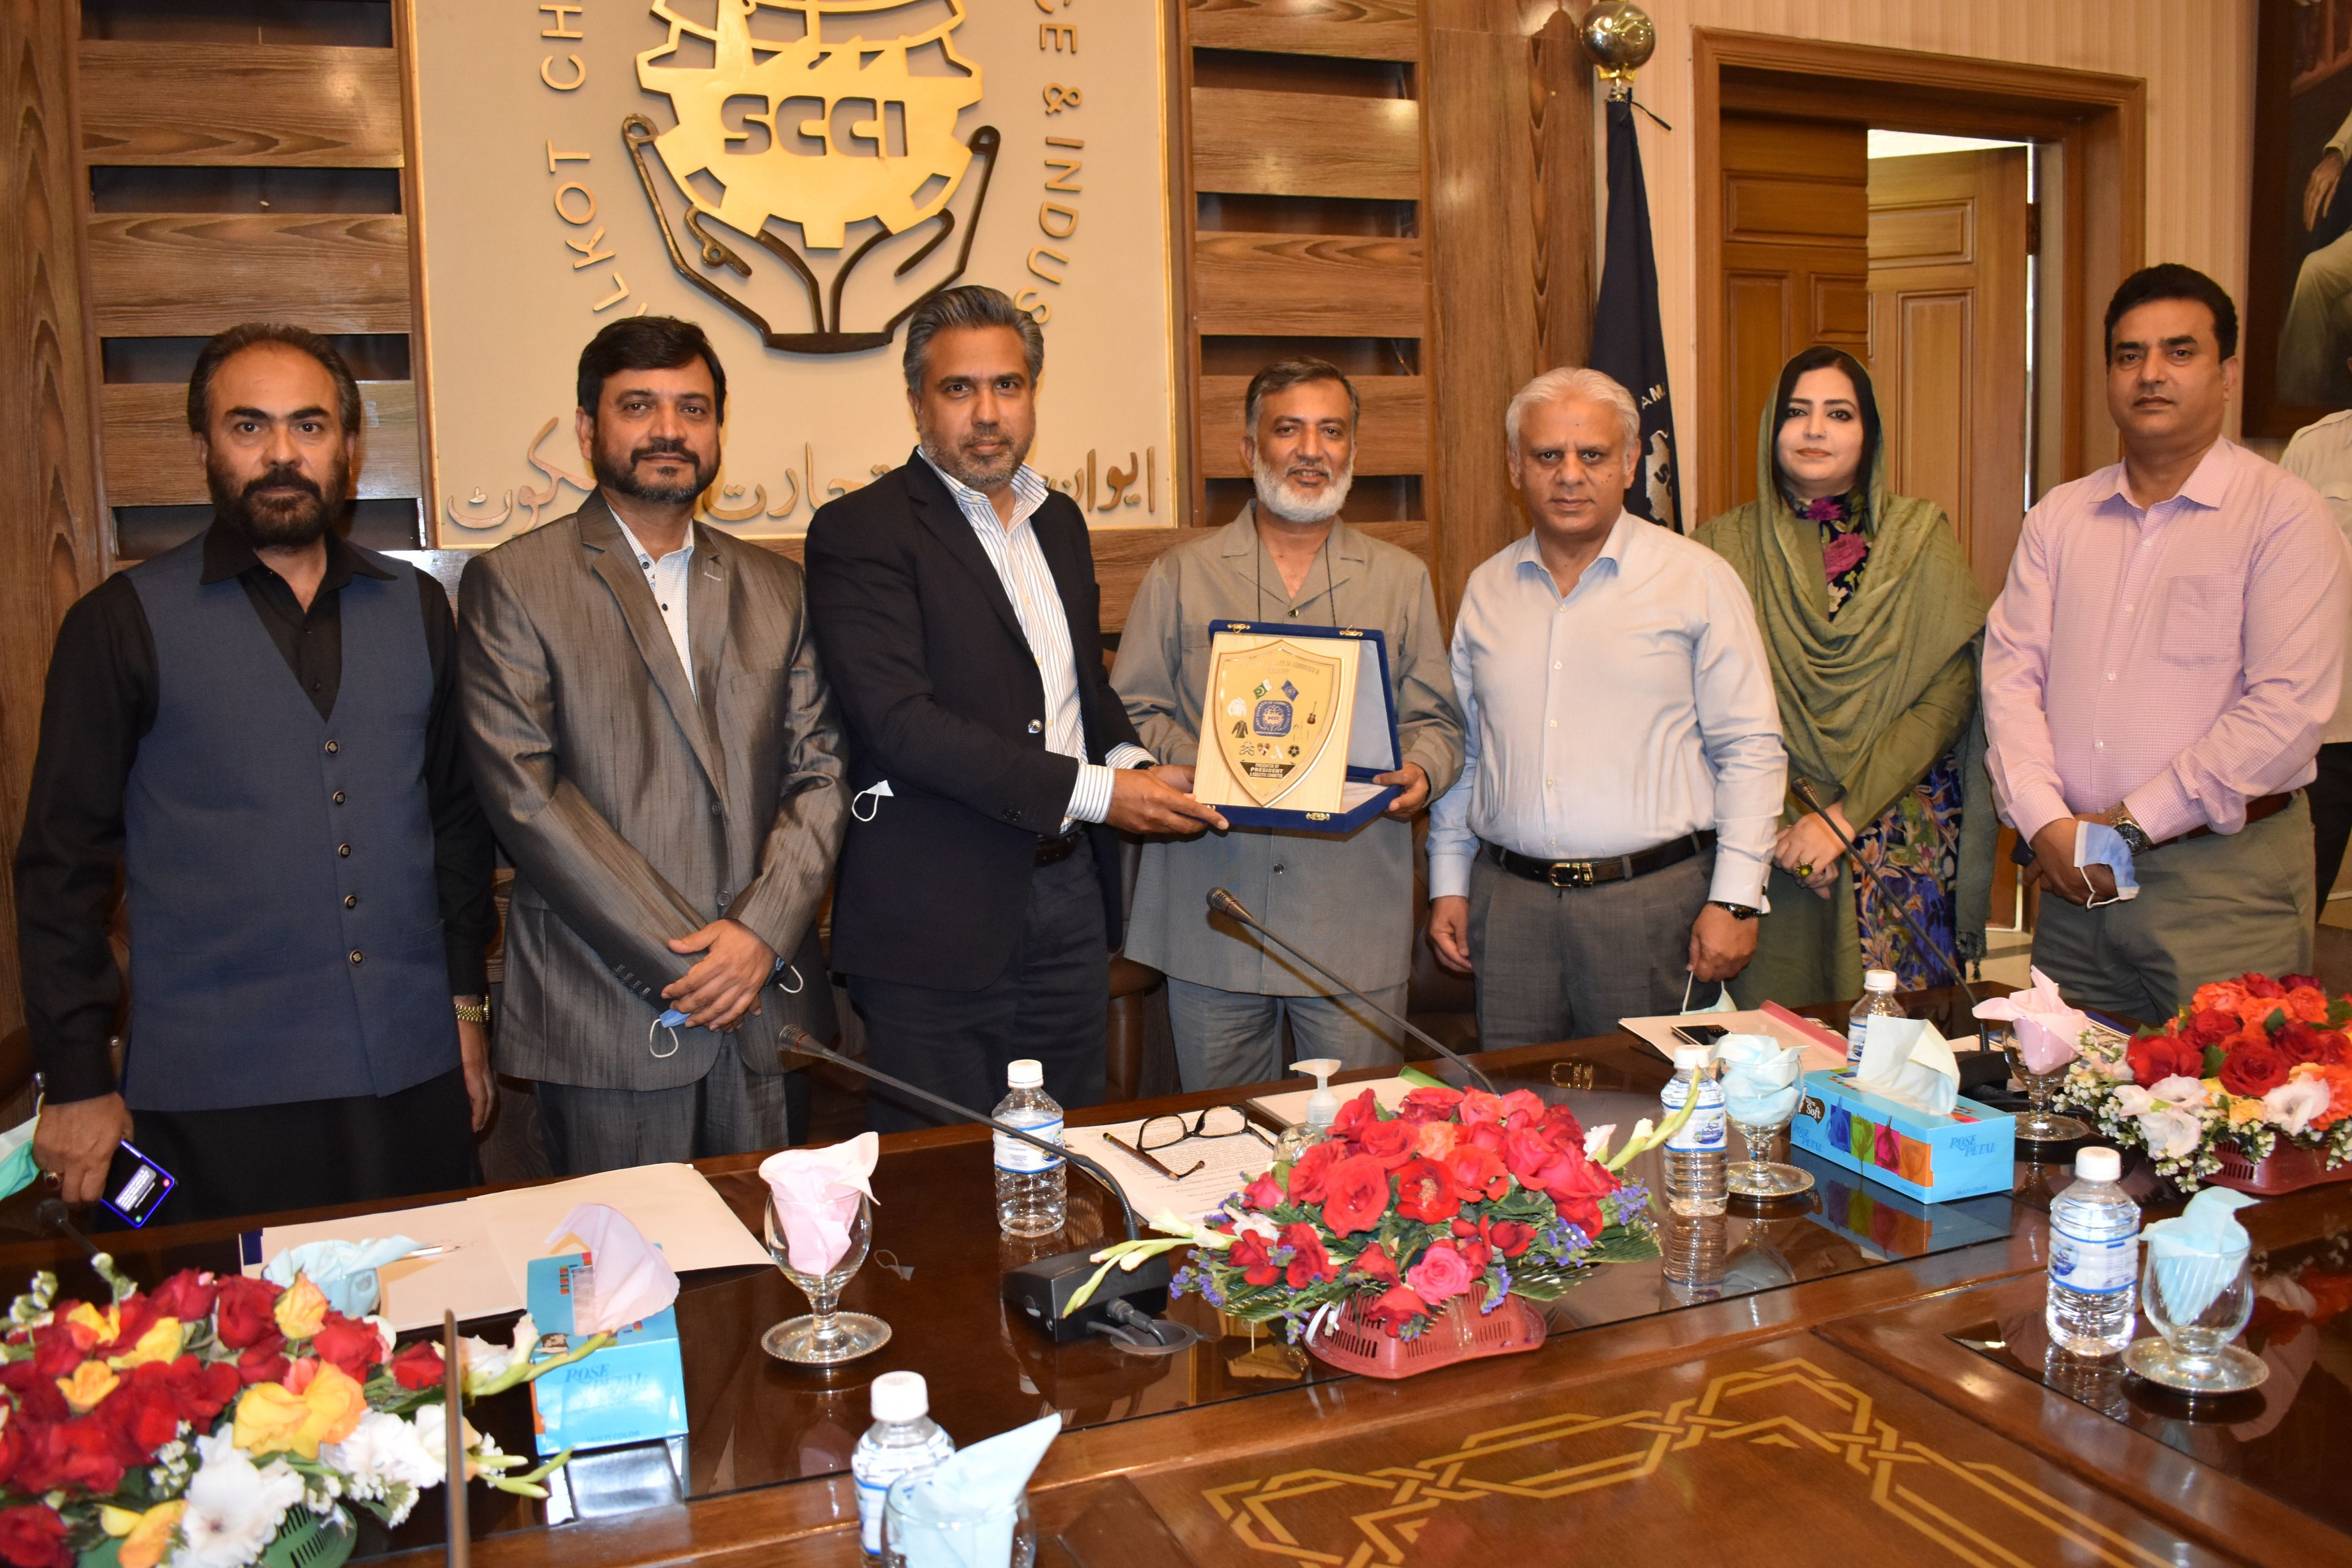 """On April 8, 2021, Mr. Qaisar Iqbal Baryar, President, SCCI chaired a seminar on """"CHINA PAKISTAN ECONOMIC CORRIDOR (CPEC) Project, Prospects and Opportunities"""" at Sialkot Chamber in collaboration with """"Think Pakistan. President SCCI praised the CPEC project and also said that Sialkot Industrial Zone would be established within Golden Economic Triangle region comprising of Gujranwala, Sialkot & Wazirabad and Gujrat, which would have all the facilities and amenities for exporters which would be connected with CPEC.  During the seminar, Miss Ayesha Syed, CEO, Skillerz Connect and Dr. Abdullah Yasir, GC University Lahore briefed about CPEC as a framework of regional connectivity. Dr. Ishtiaq Gondal, University of Punjab, Lahore mentioned that under the CPEC project, China has intended $76 billion dollar investment to rapidly upgrade Pakistan's required infrastructure and strengthen its economy by the construction of modern transportation networks, numerous energy projects, and special economic zones.  President SCCI said that participants would have gained insights from the seminar about the strategic and economic significance of China-Pakistan Economic Corridor (CPEC) for both countries."""